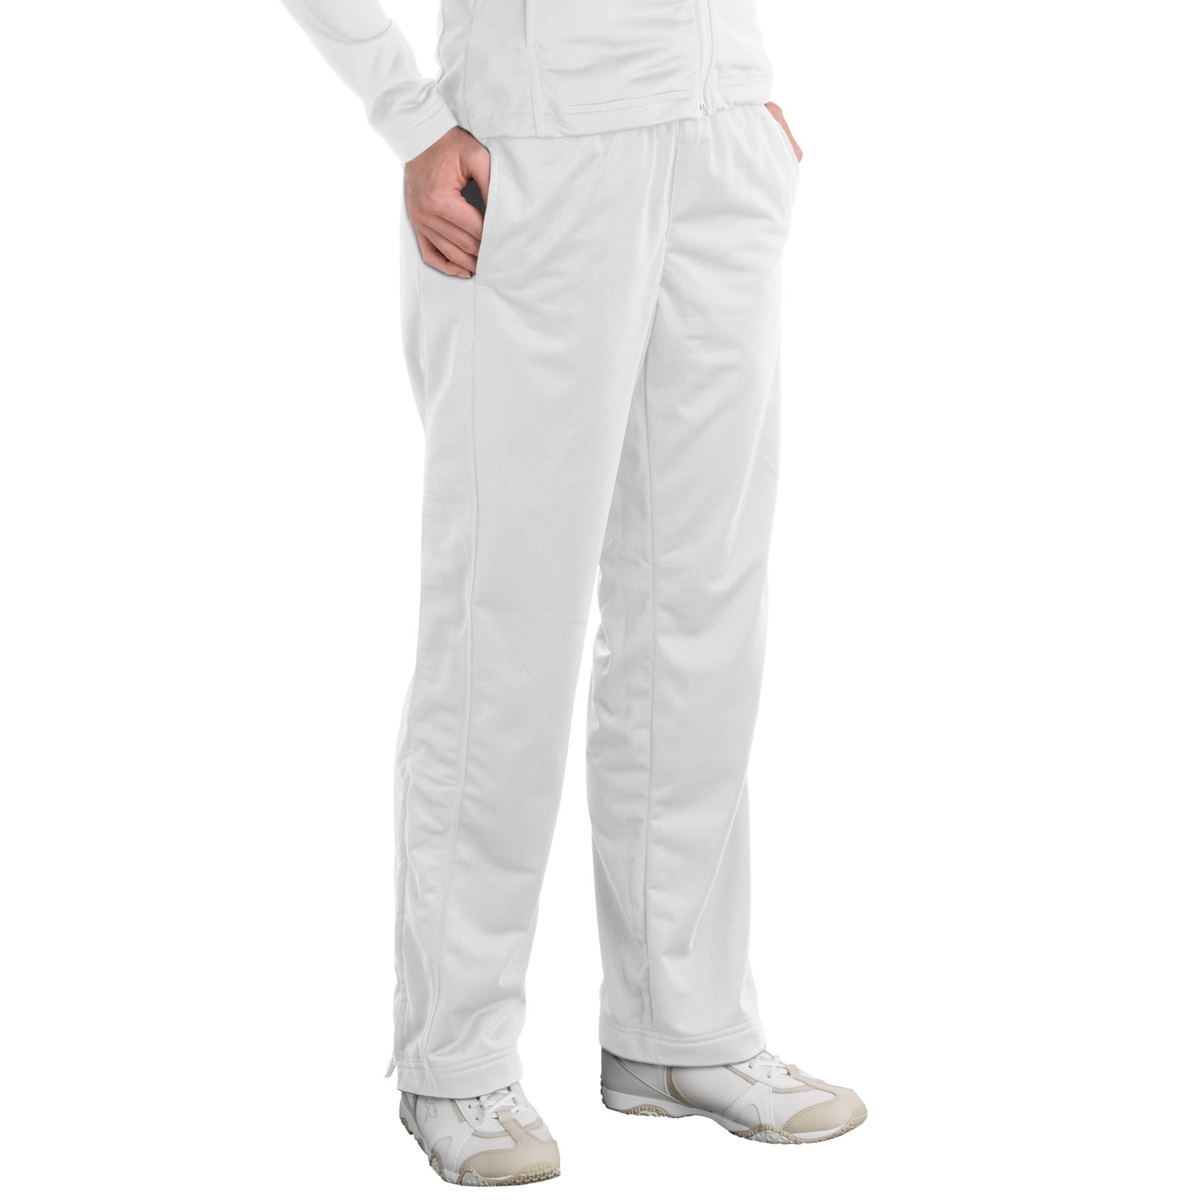 Sport-Tek LPST91 Ladies Tricot Track Pants - White | FullSource.com